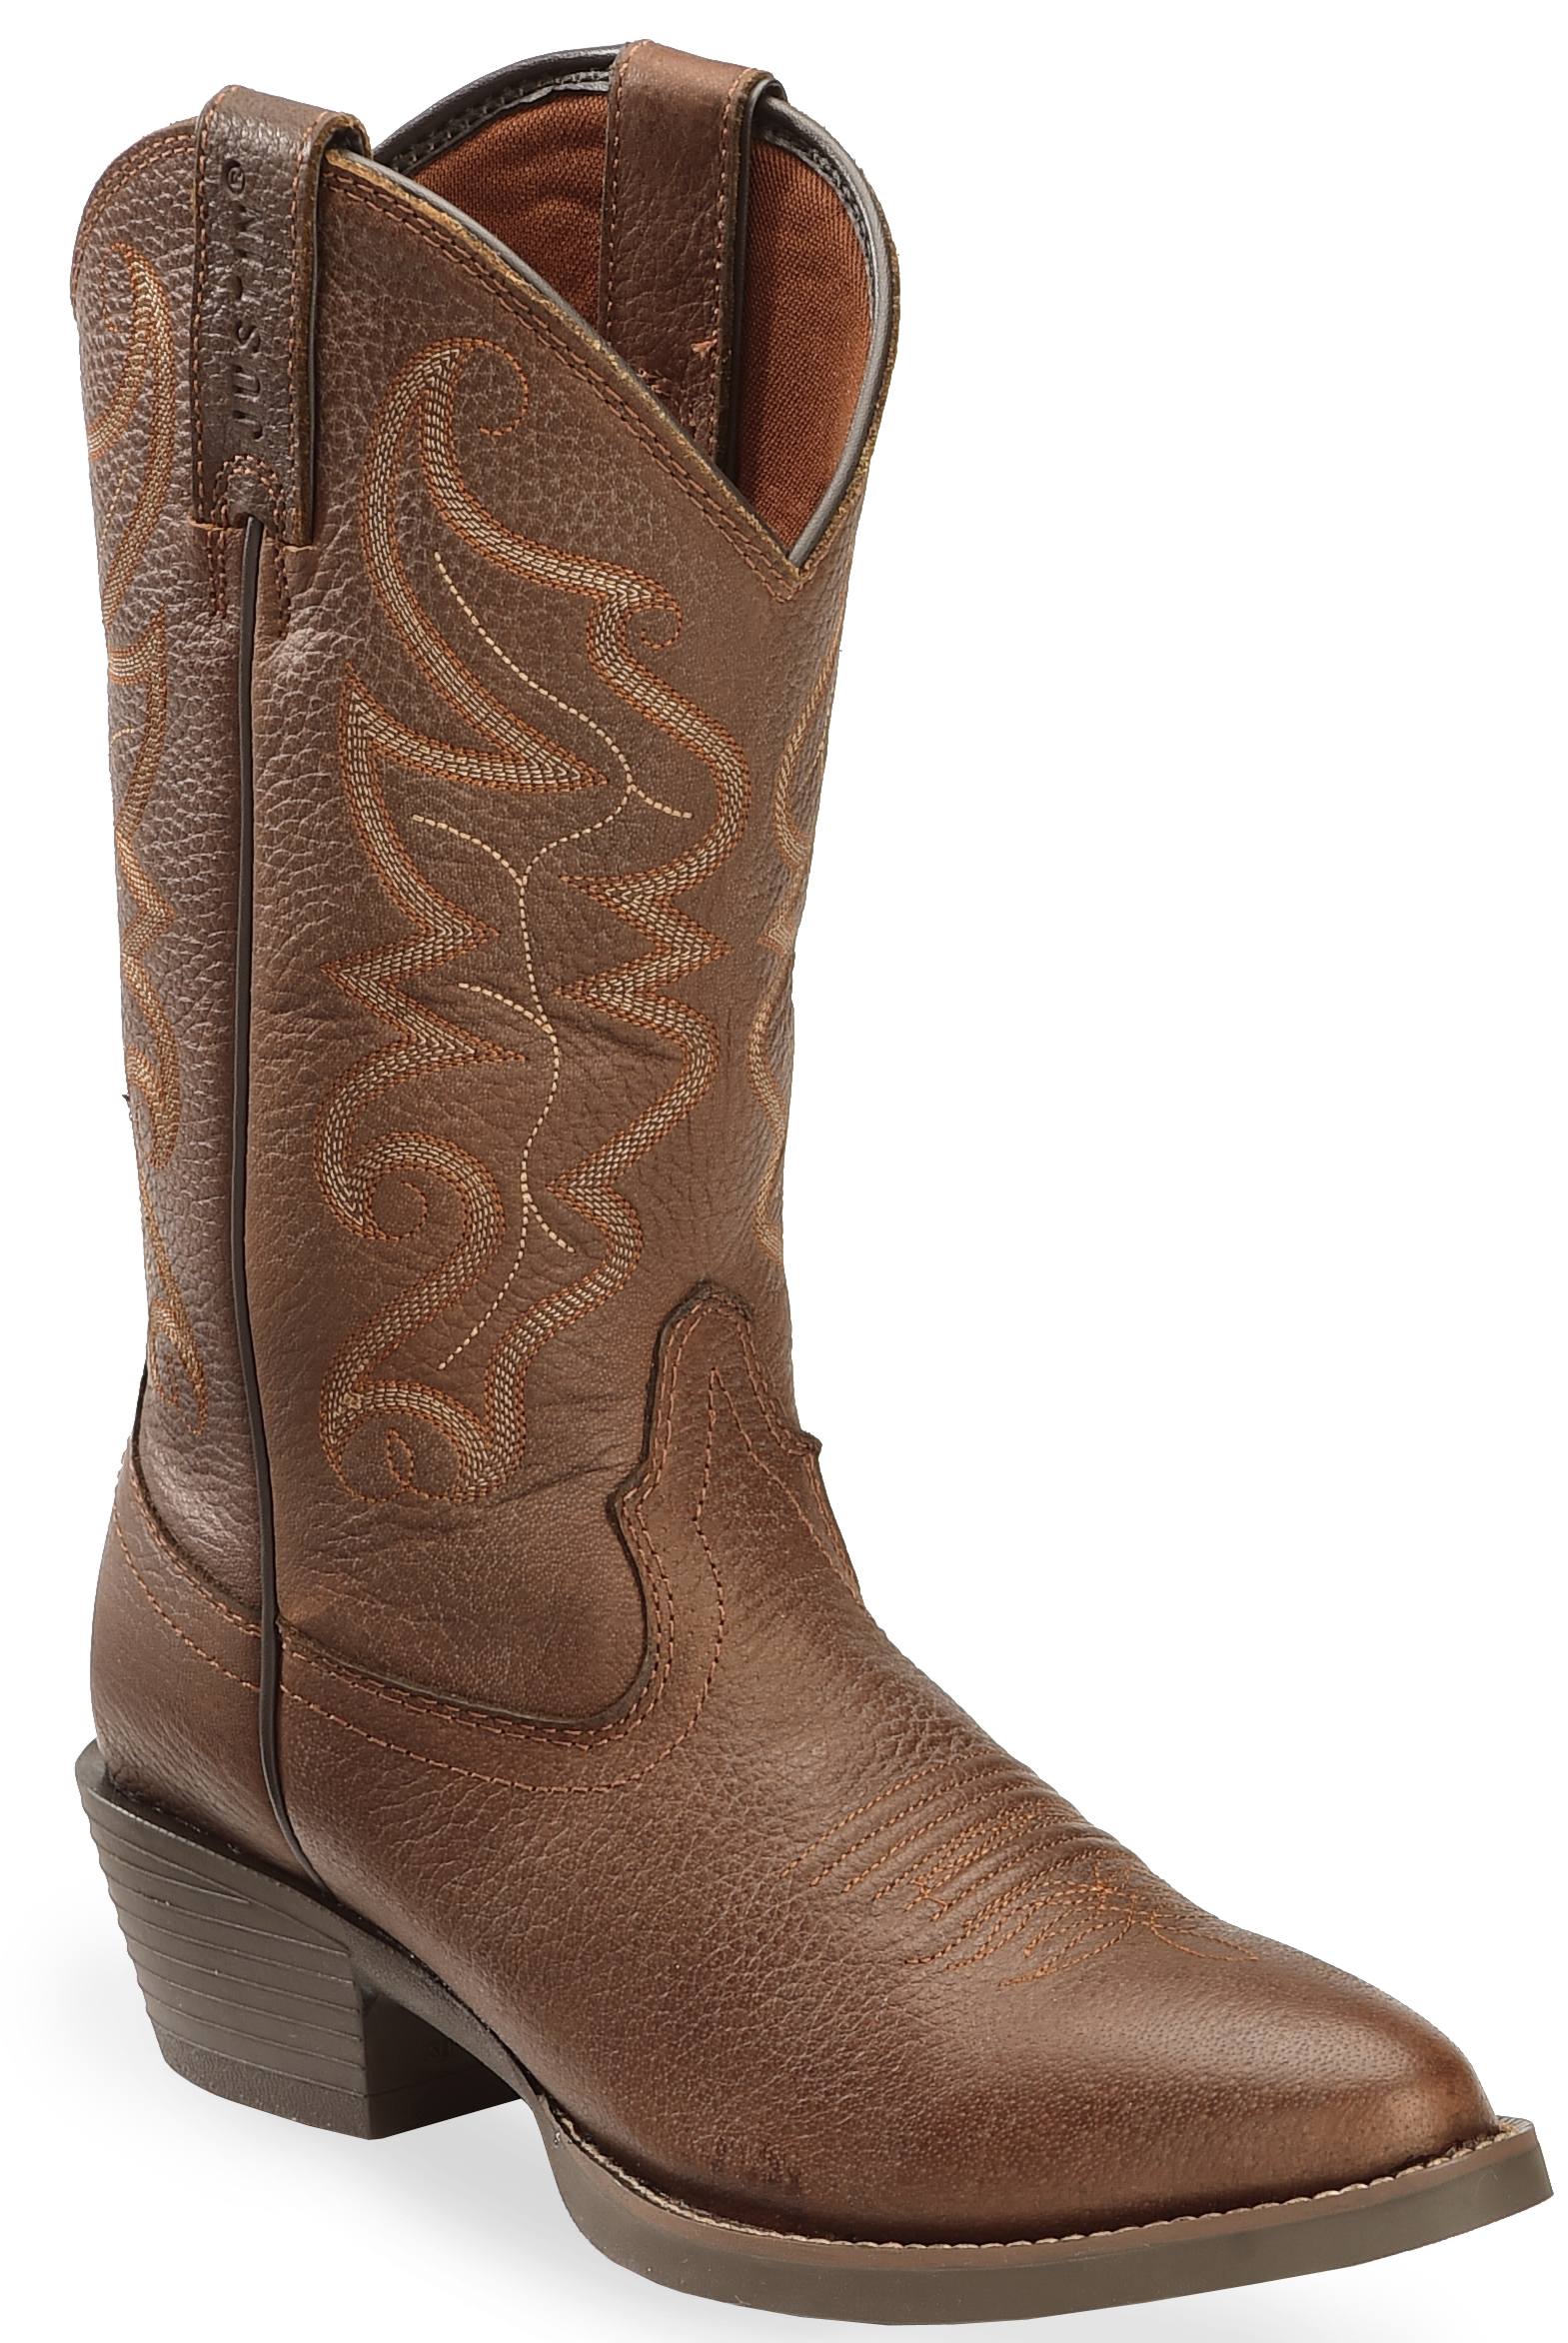 Justin men 39 s all star chocolate western boots round toe for New model boot